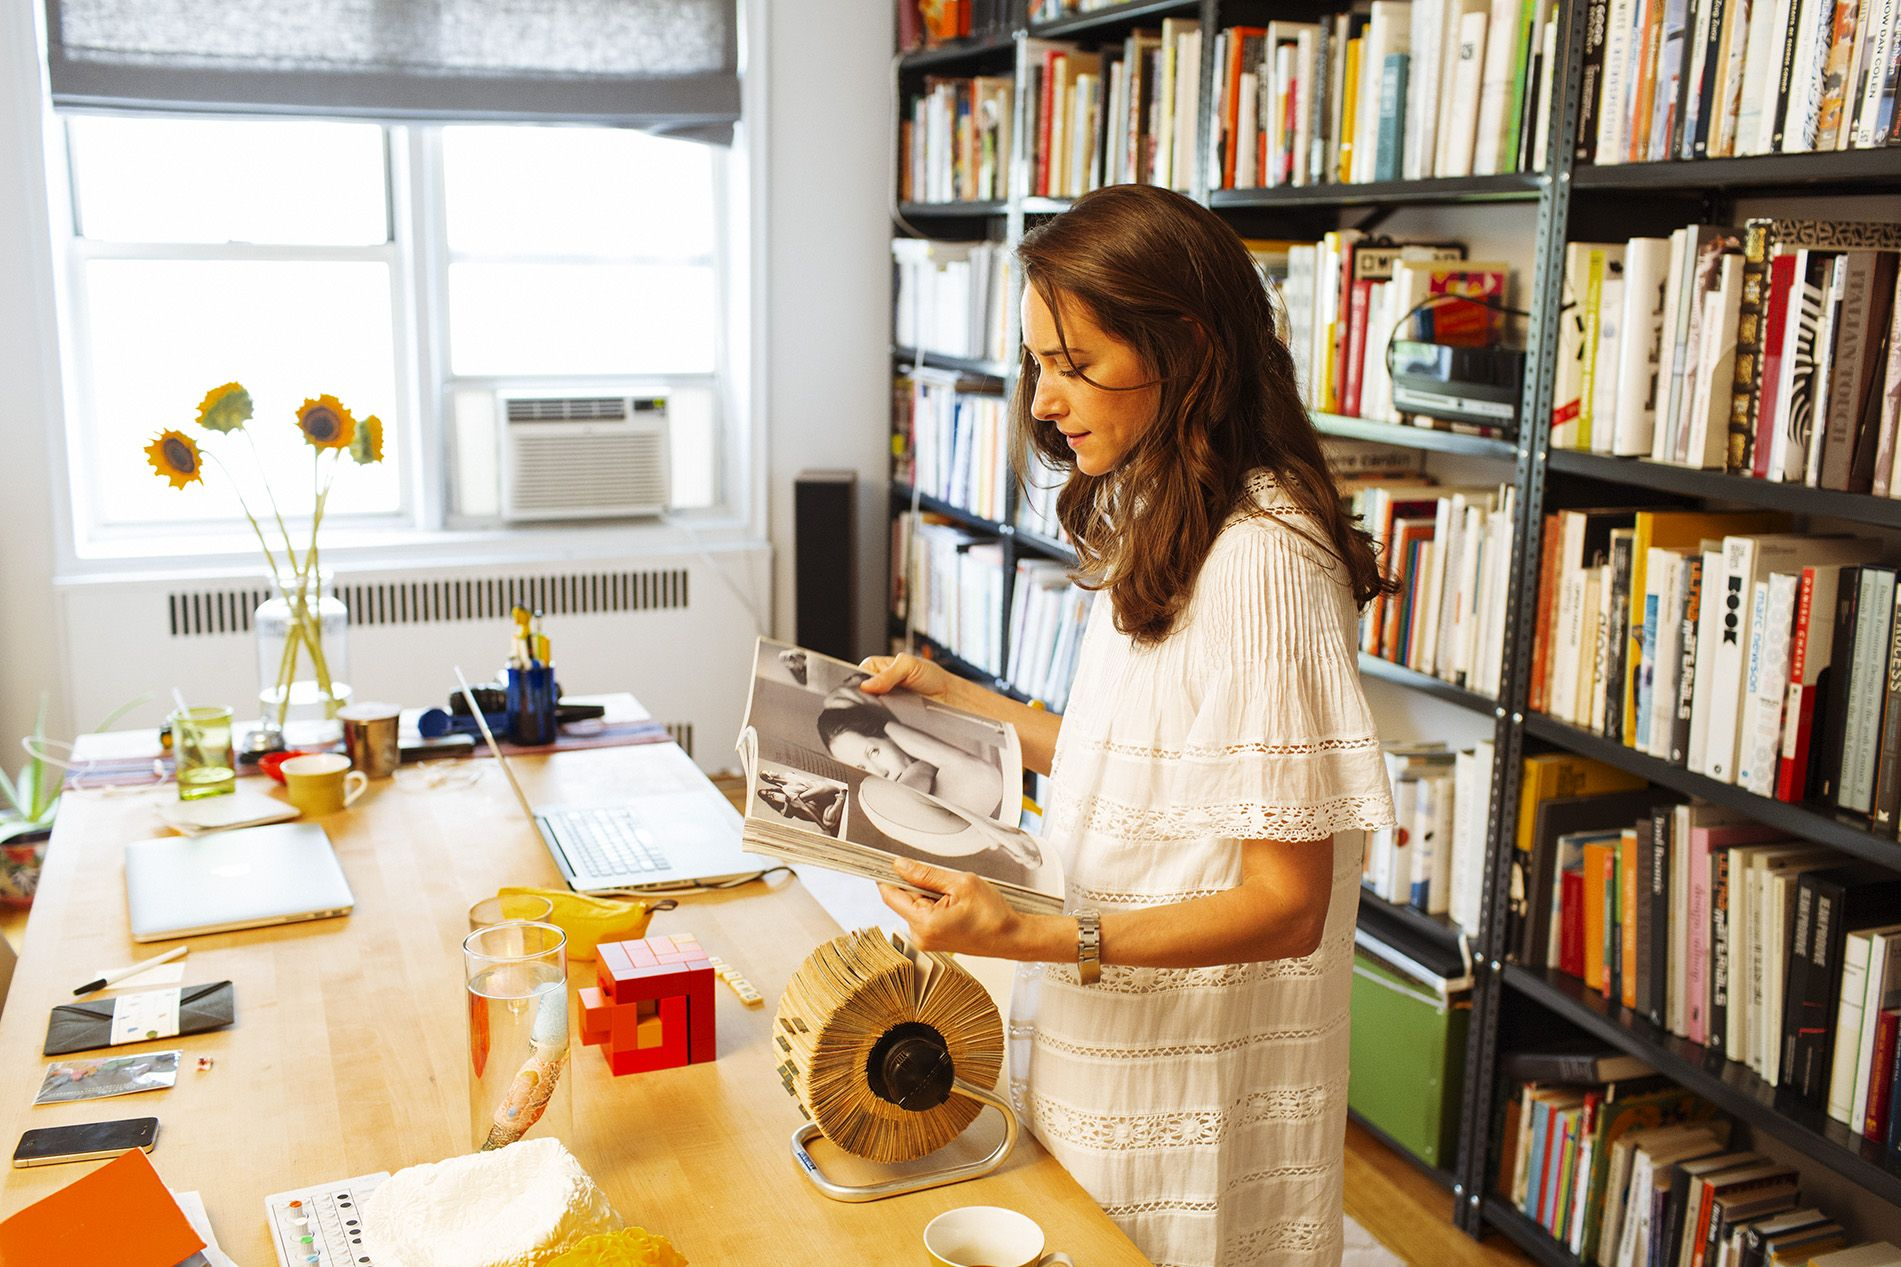 ambra medda at home in new york city the selby i n t e r i o r